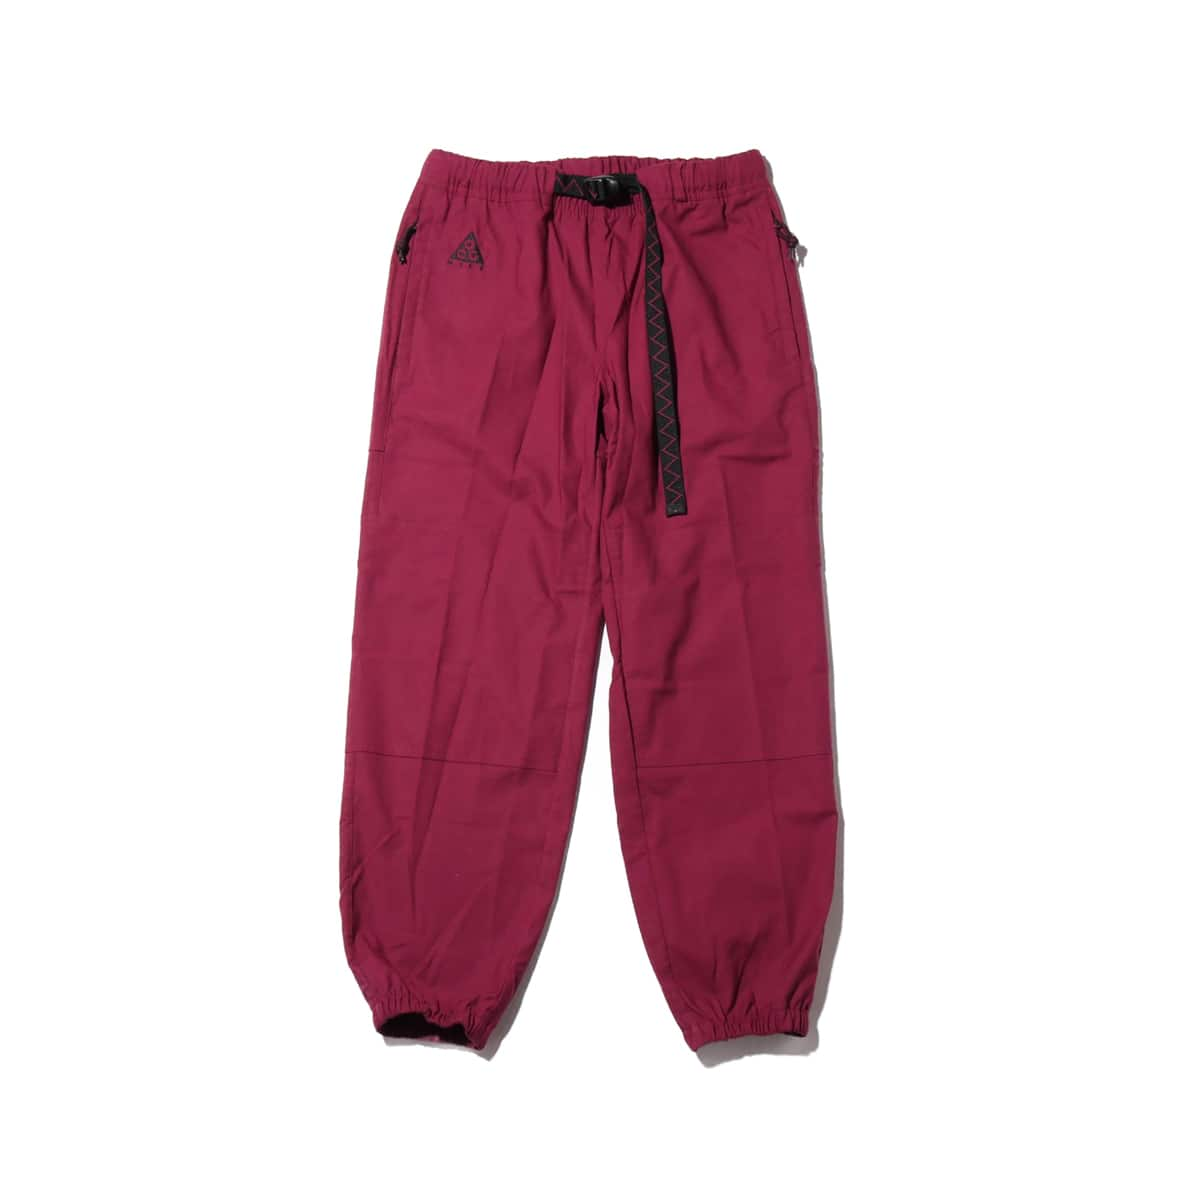 NIKE AS W ACG PANT WVN VILLAIN RED/BLACK 20SP-S_photo_large